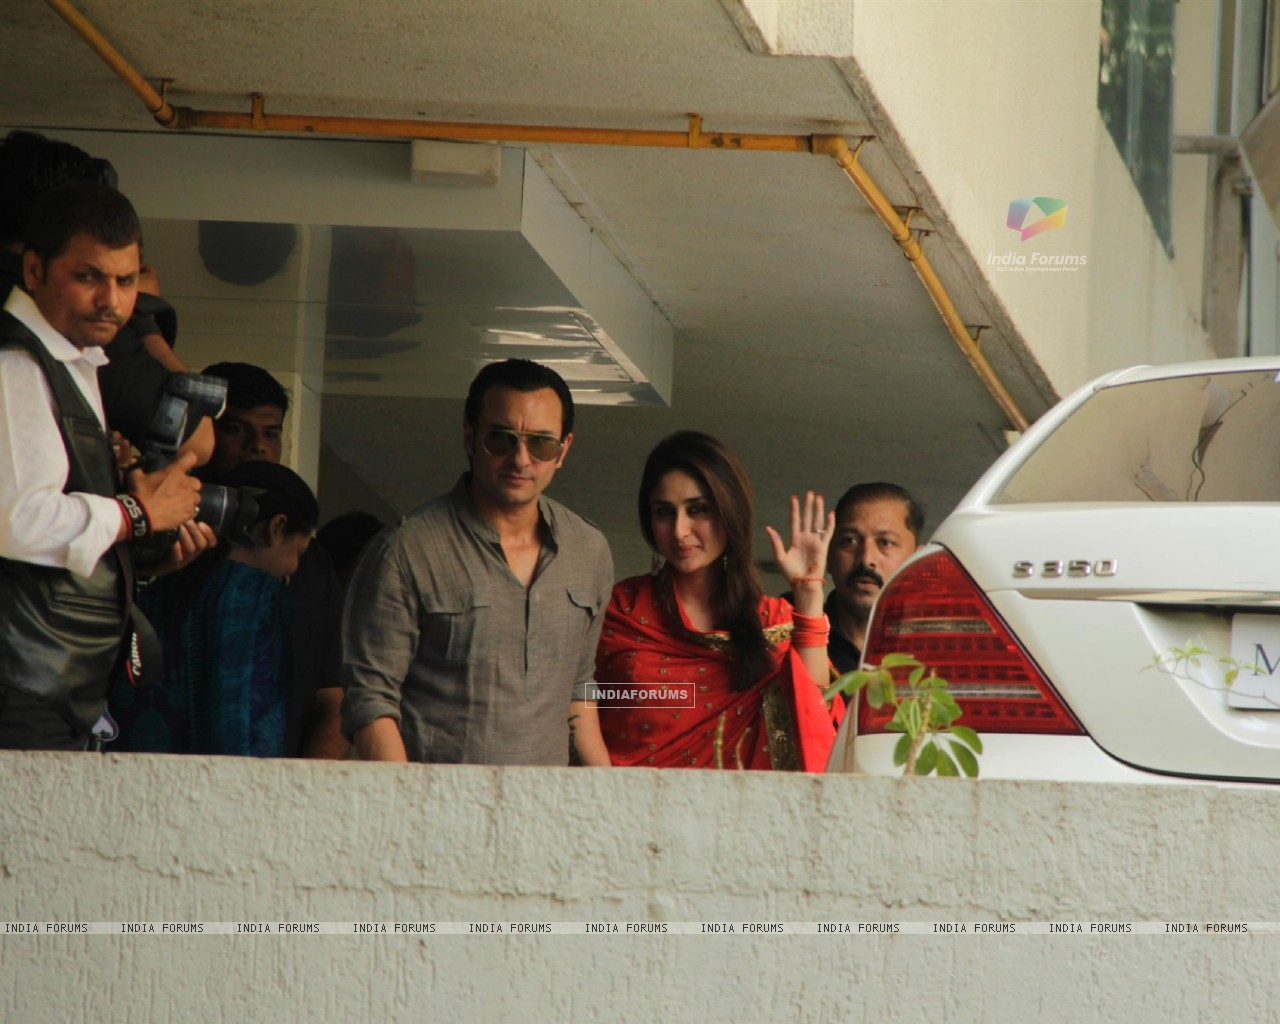 Saif Ali Khan with wife Kareena Kapoor gestures after their marriage (232785) size:1280x1024